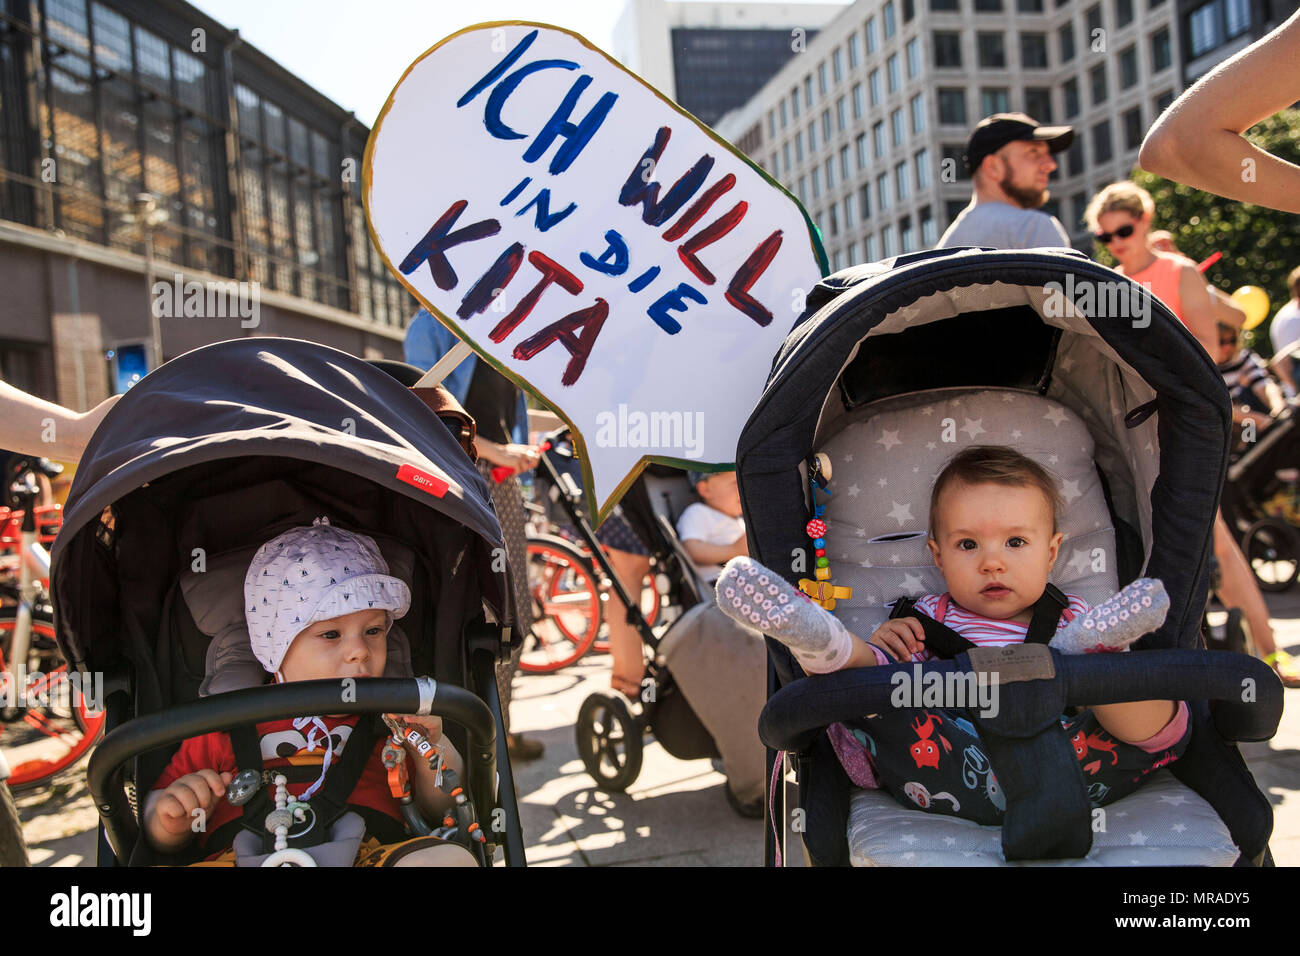 Berlin, Germany, 26 May 2018, Babies with a 'Ich will in die Kita' (lit. 'I want to go to daycare') sign are at a protest. Parents and educators demand more daycare places to be available for their children and better pay for daycare workers. According to Berlin's Family Office, 170 000 daycare places are currently available. Despite the steady increase in recent years, 2500 children are still without a daycare spot. Photo: Carsten Koall/dpa Credit: dpa picture alliance/Alamy Live News Stock Photo